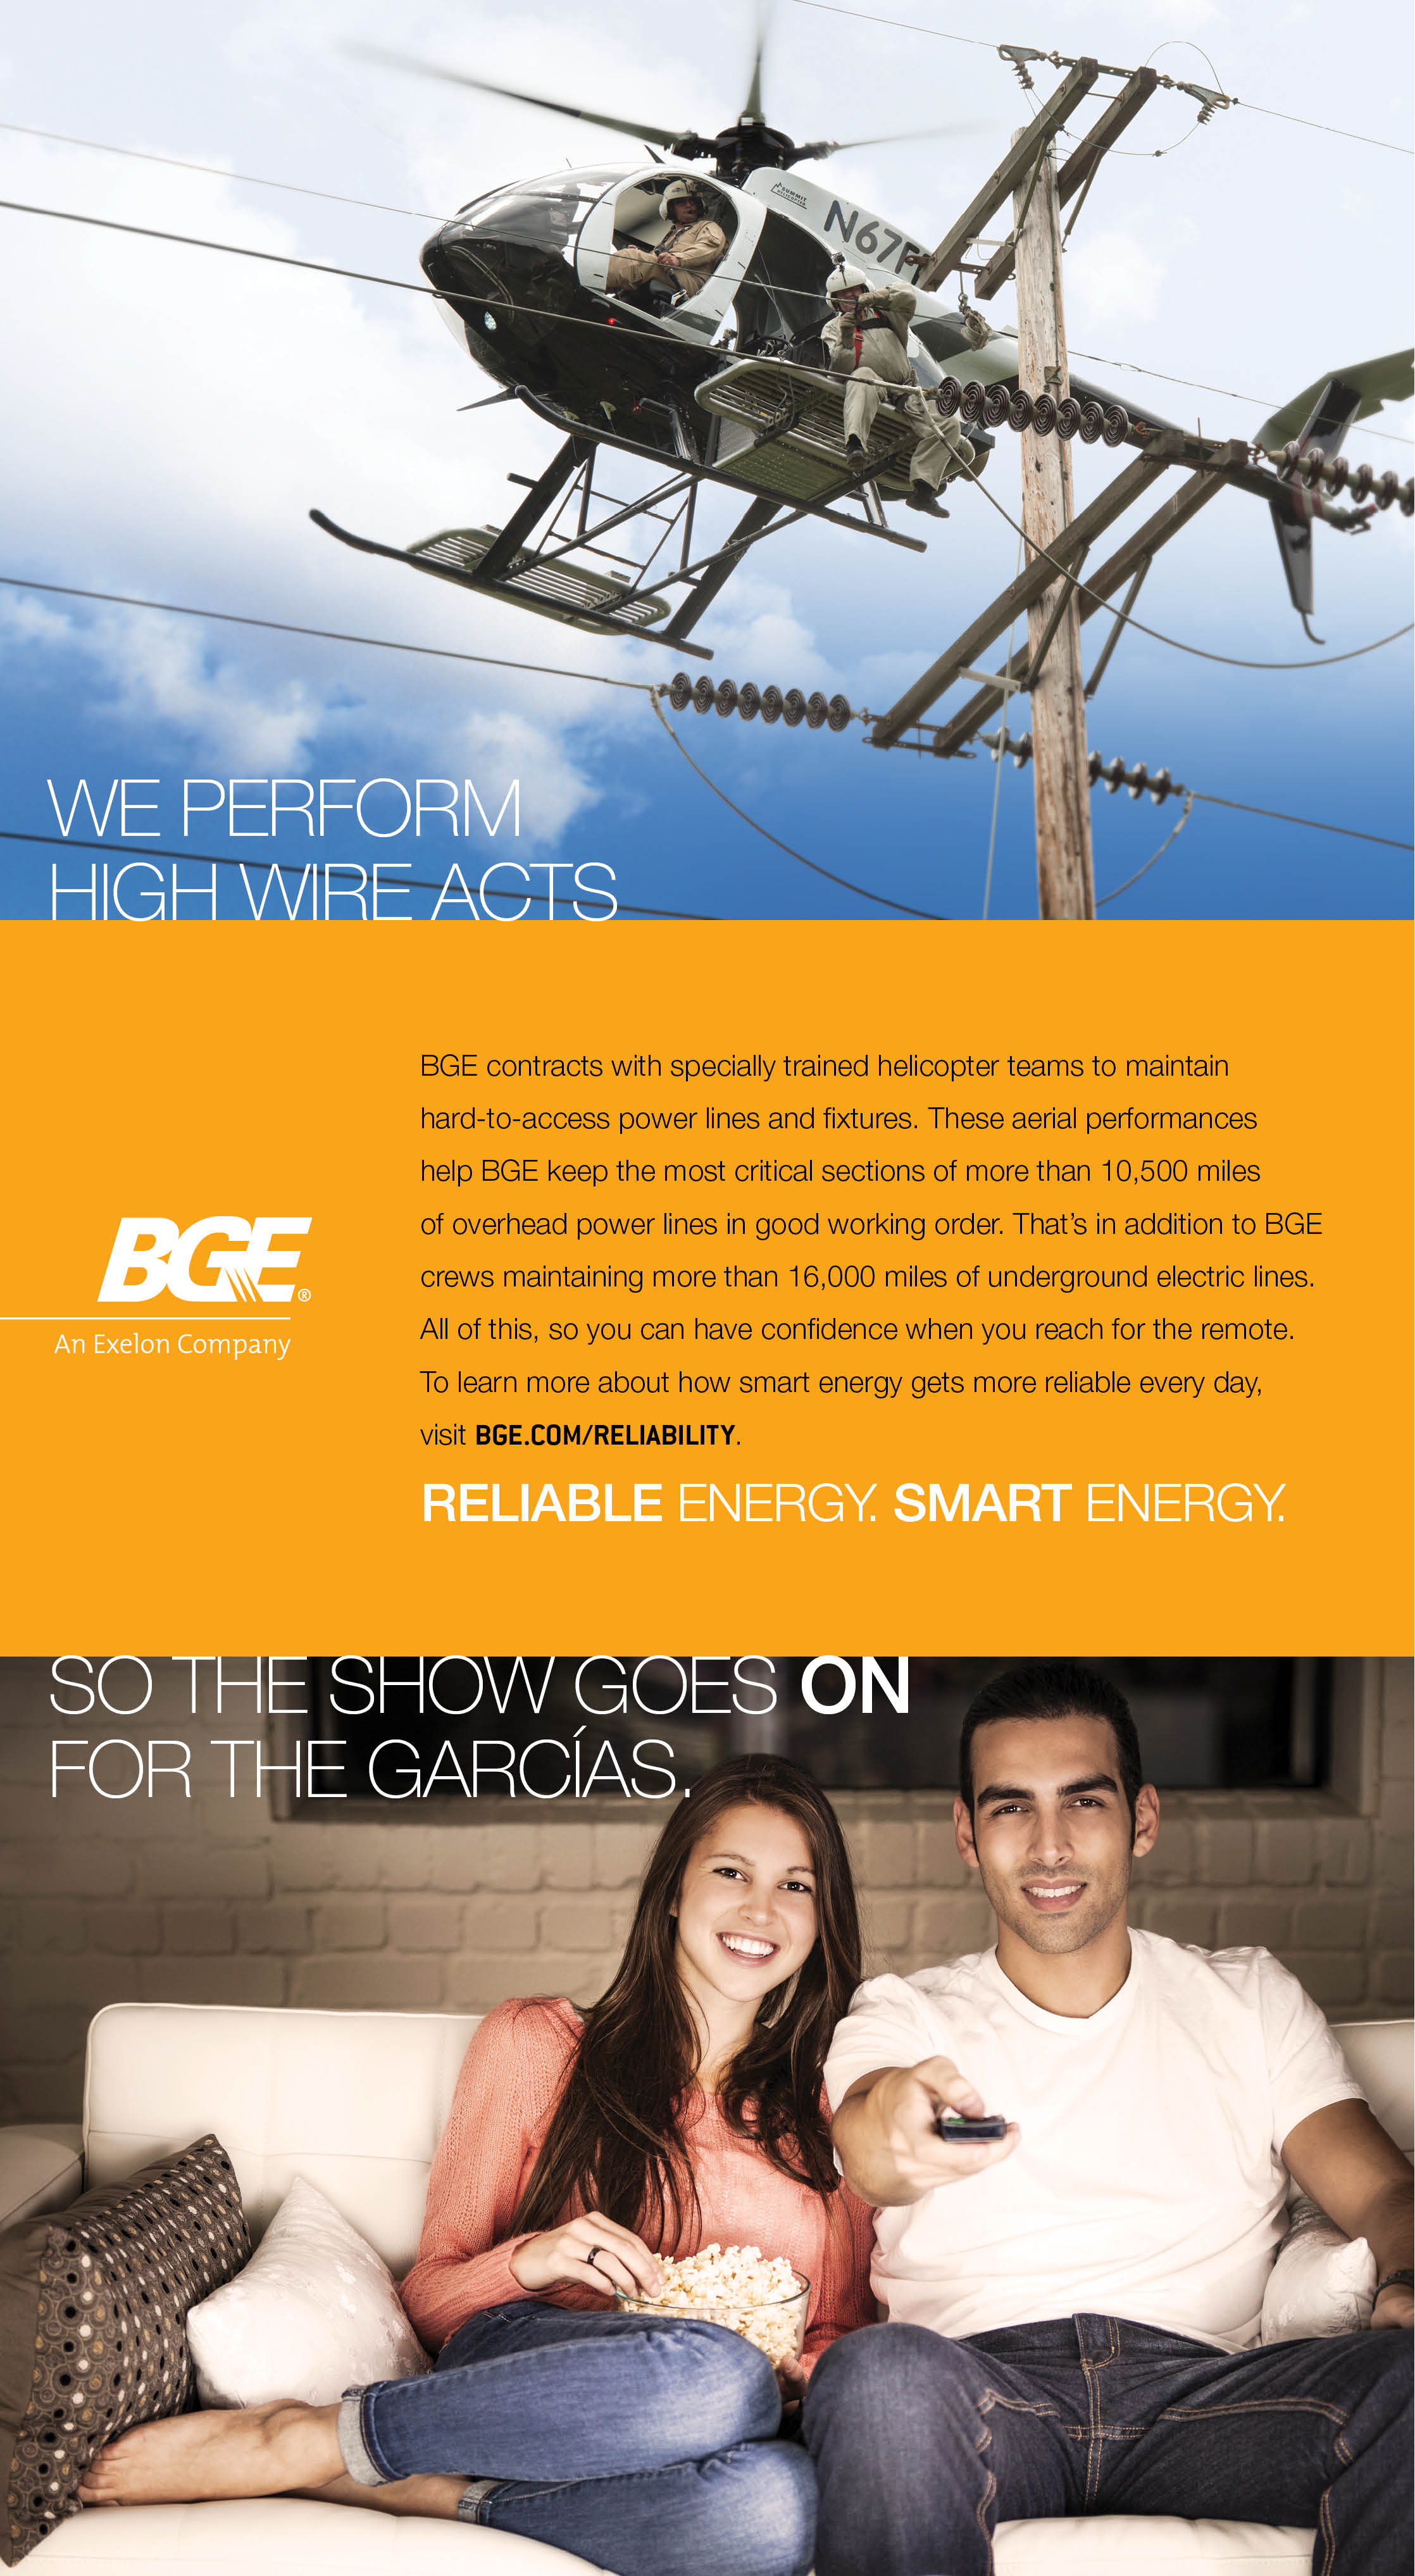 Reliability Baltimore Gas And Electric Company